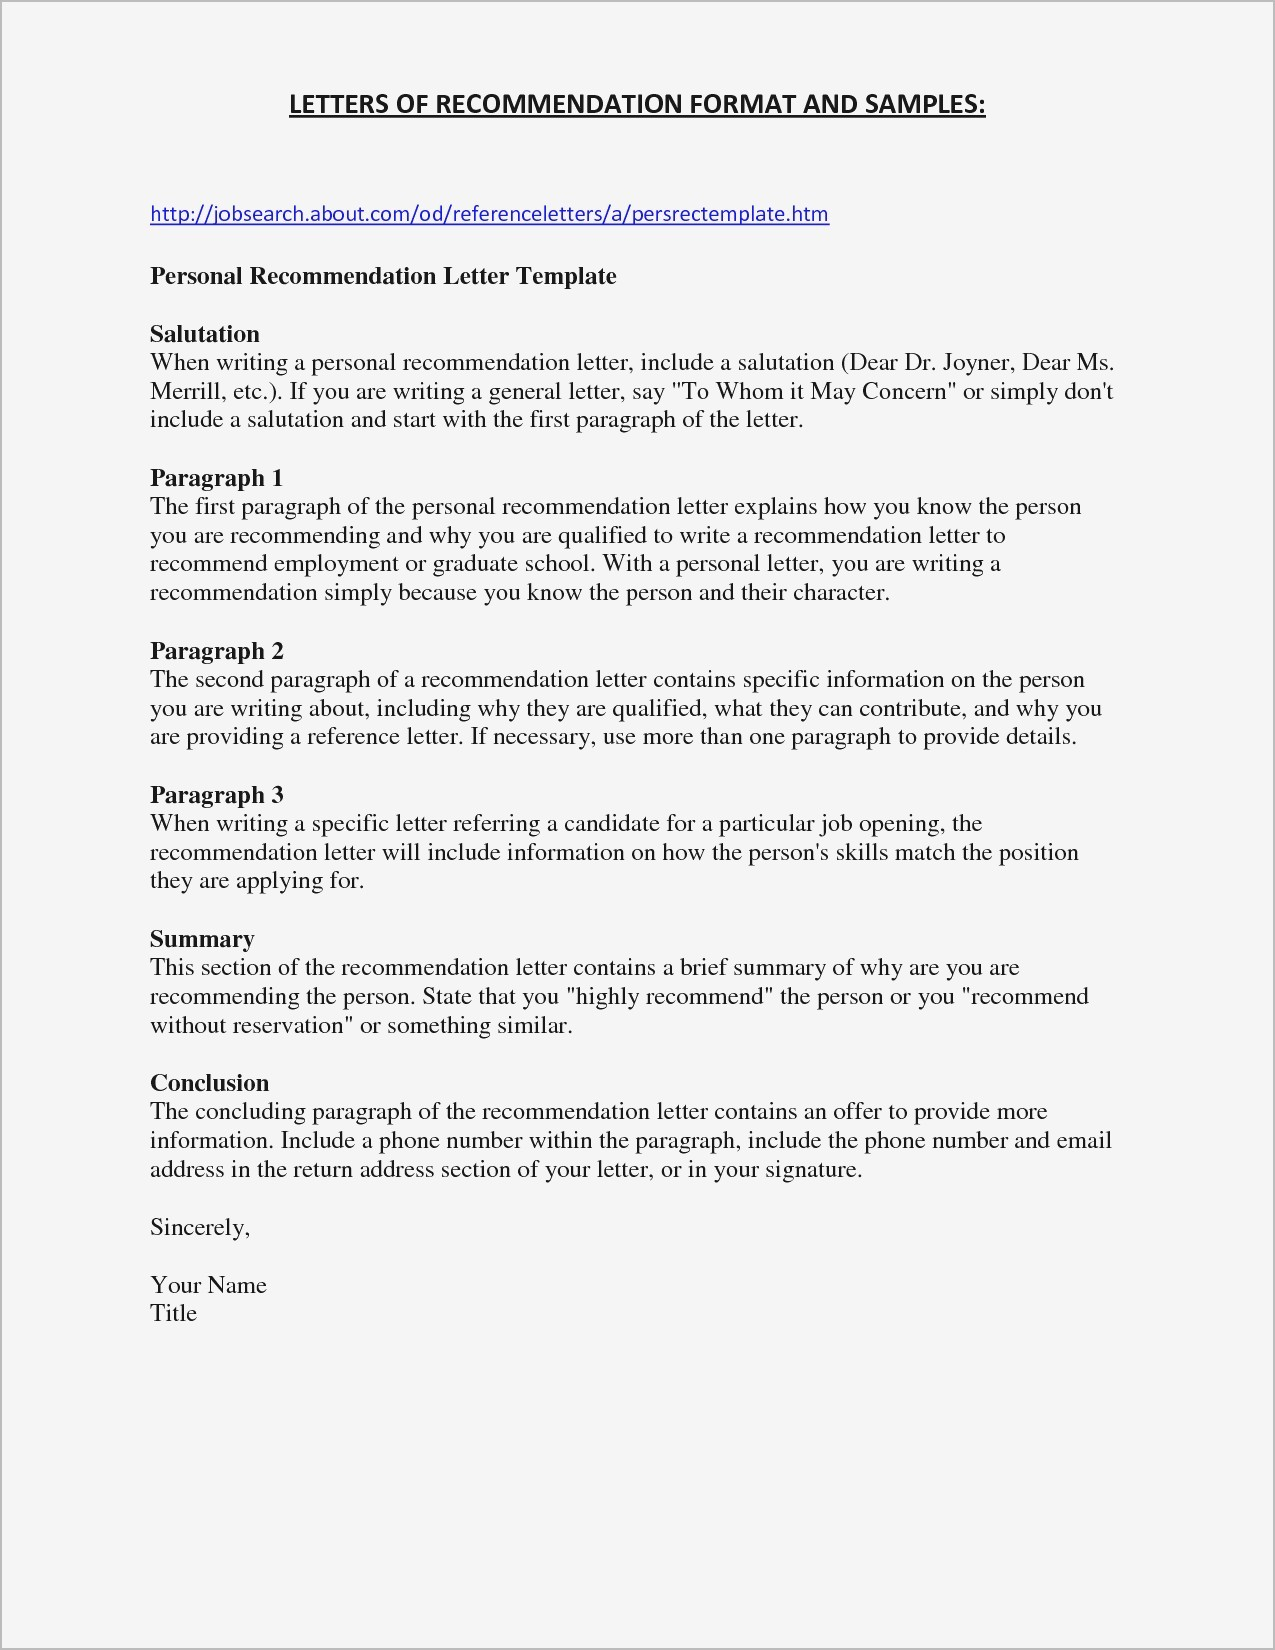 General Reference Letter Template - Personal Reference Letter for Job Valid Sample Personal Reference